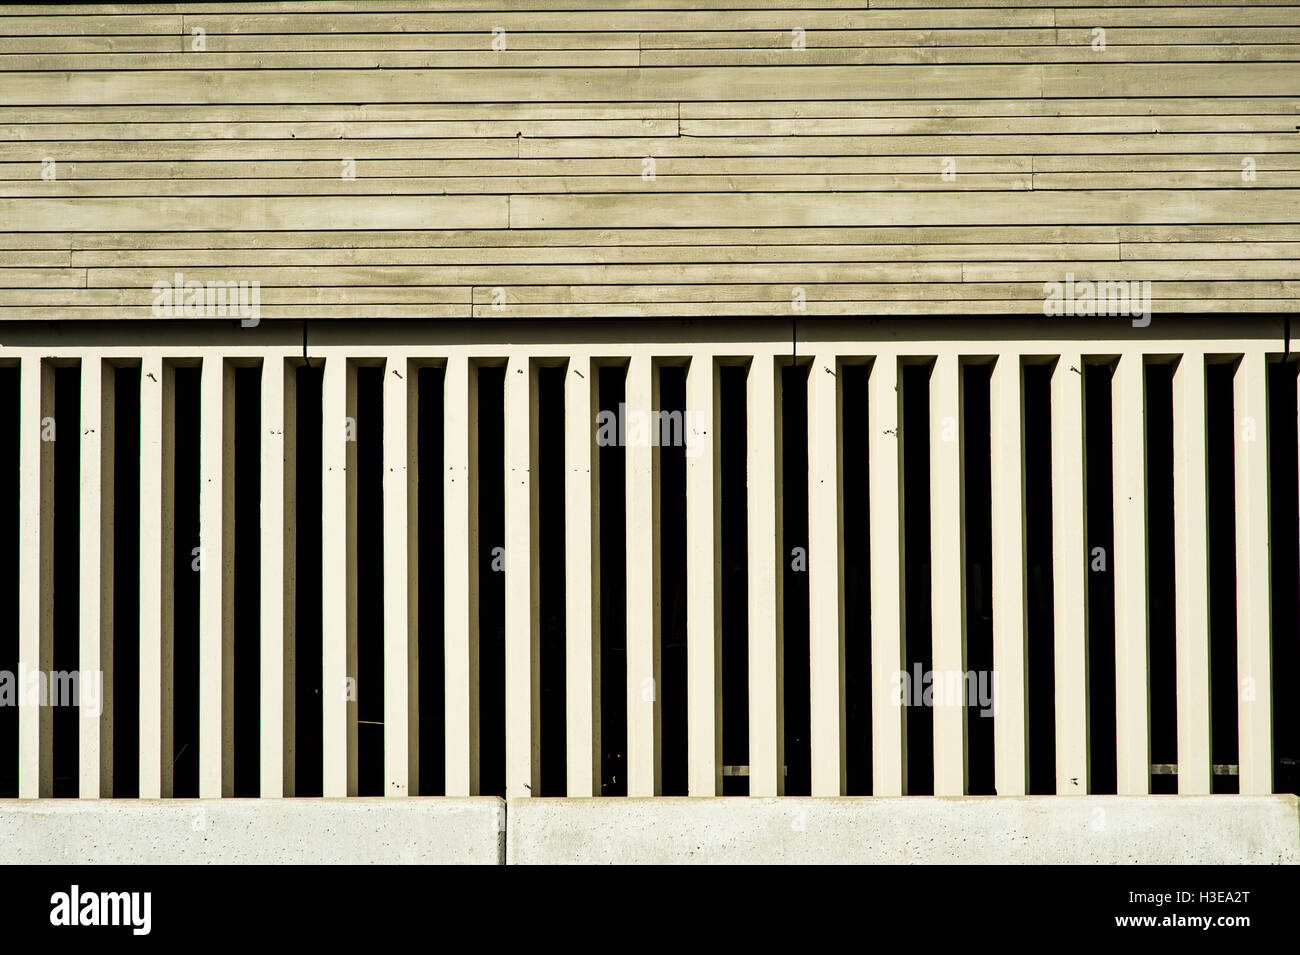 Decorative Wood and Concrete Architectural Feature Building Cladding - Stock Image